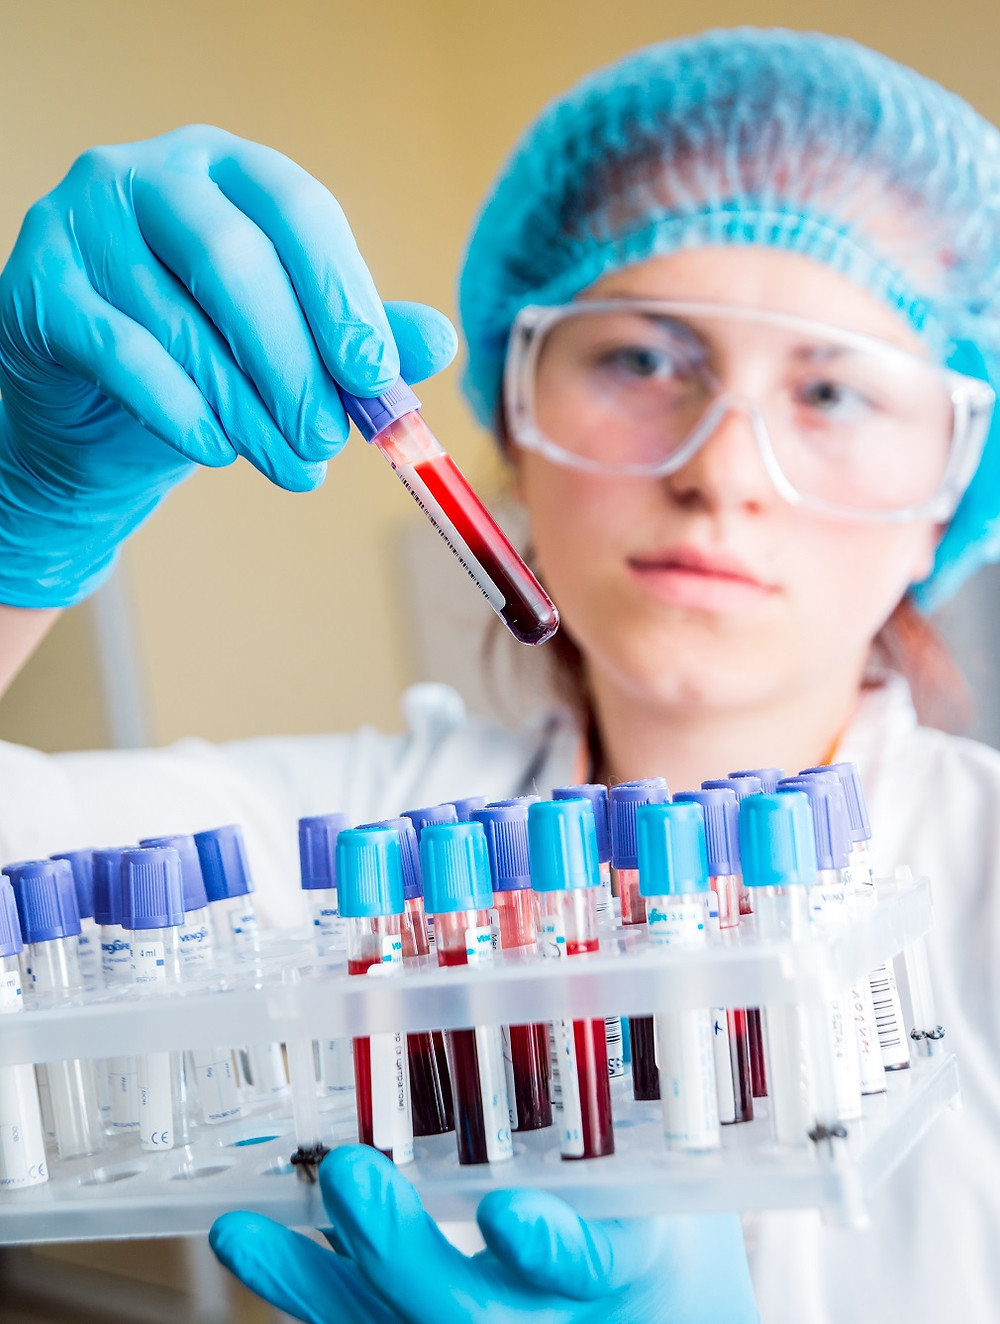 A female scientist wearing a blue hair net and safety googles holding a tray of test tubes full of blood